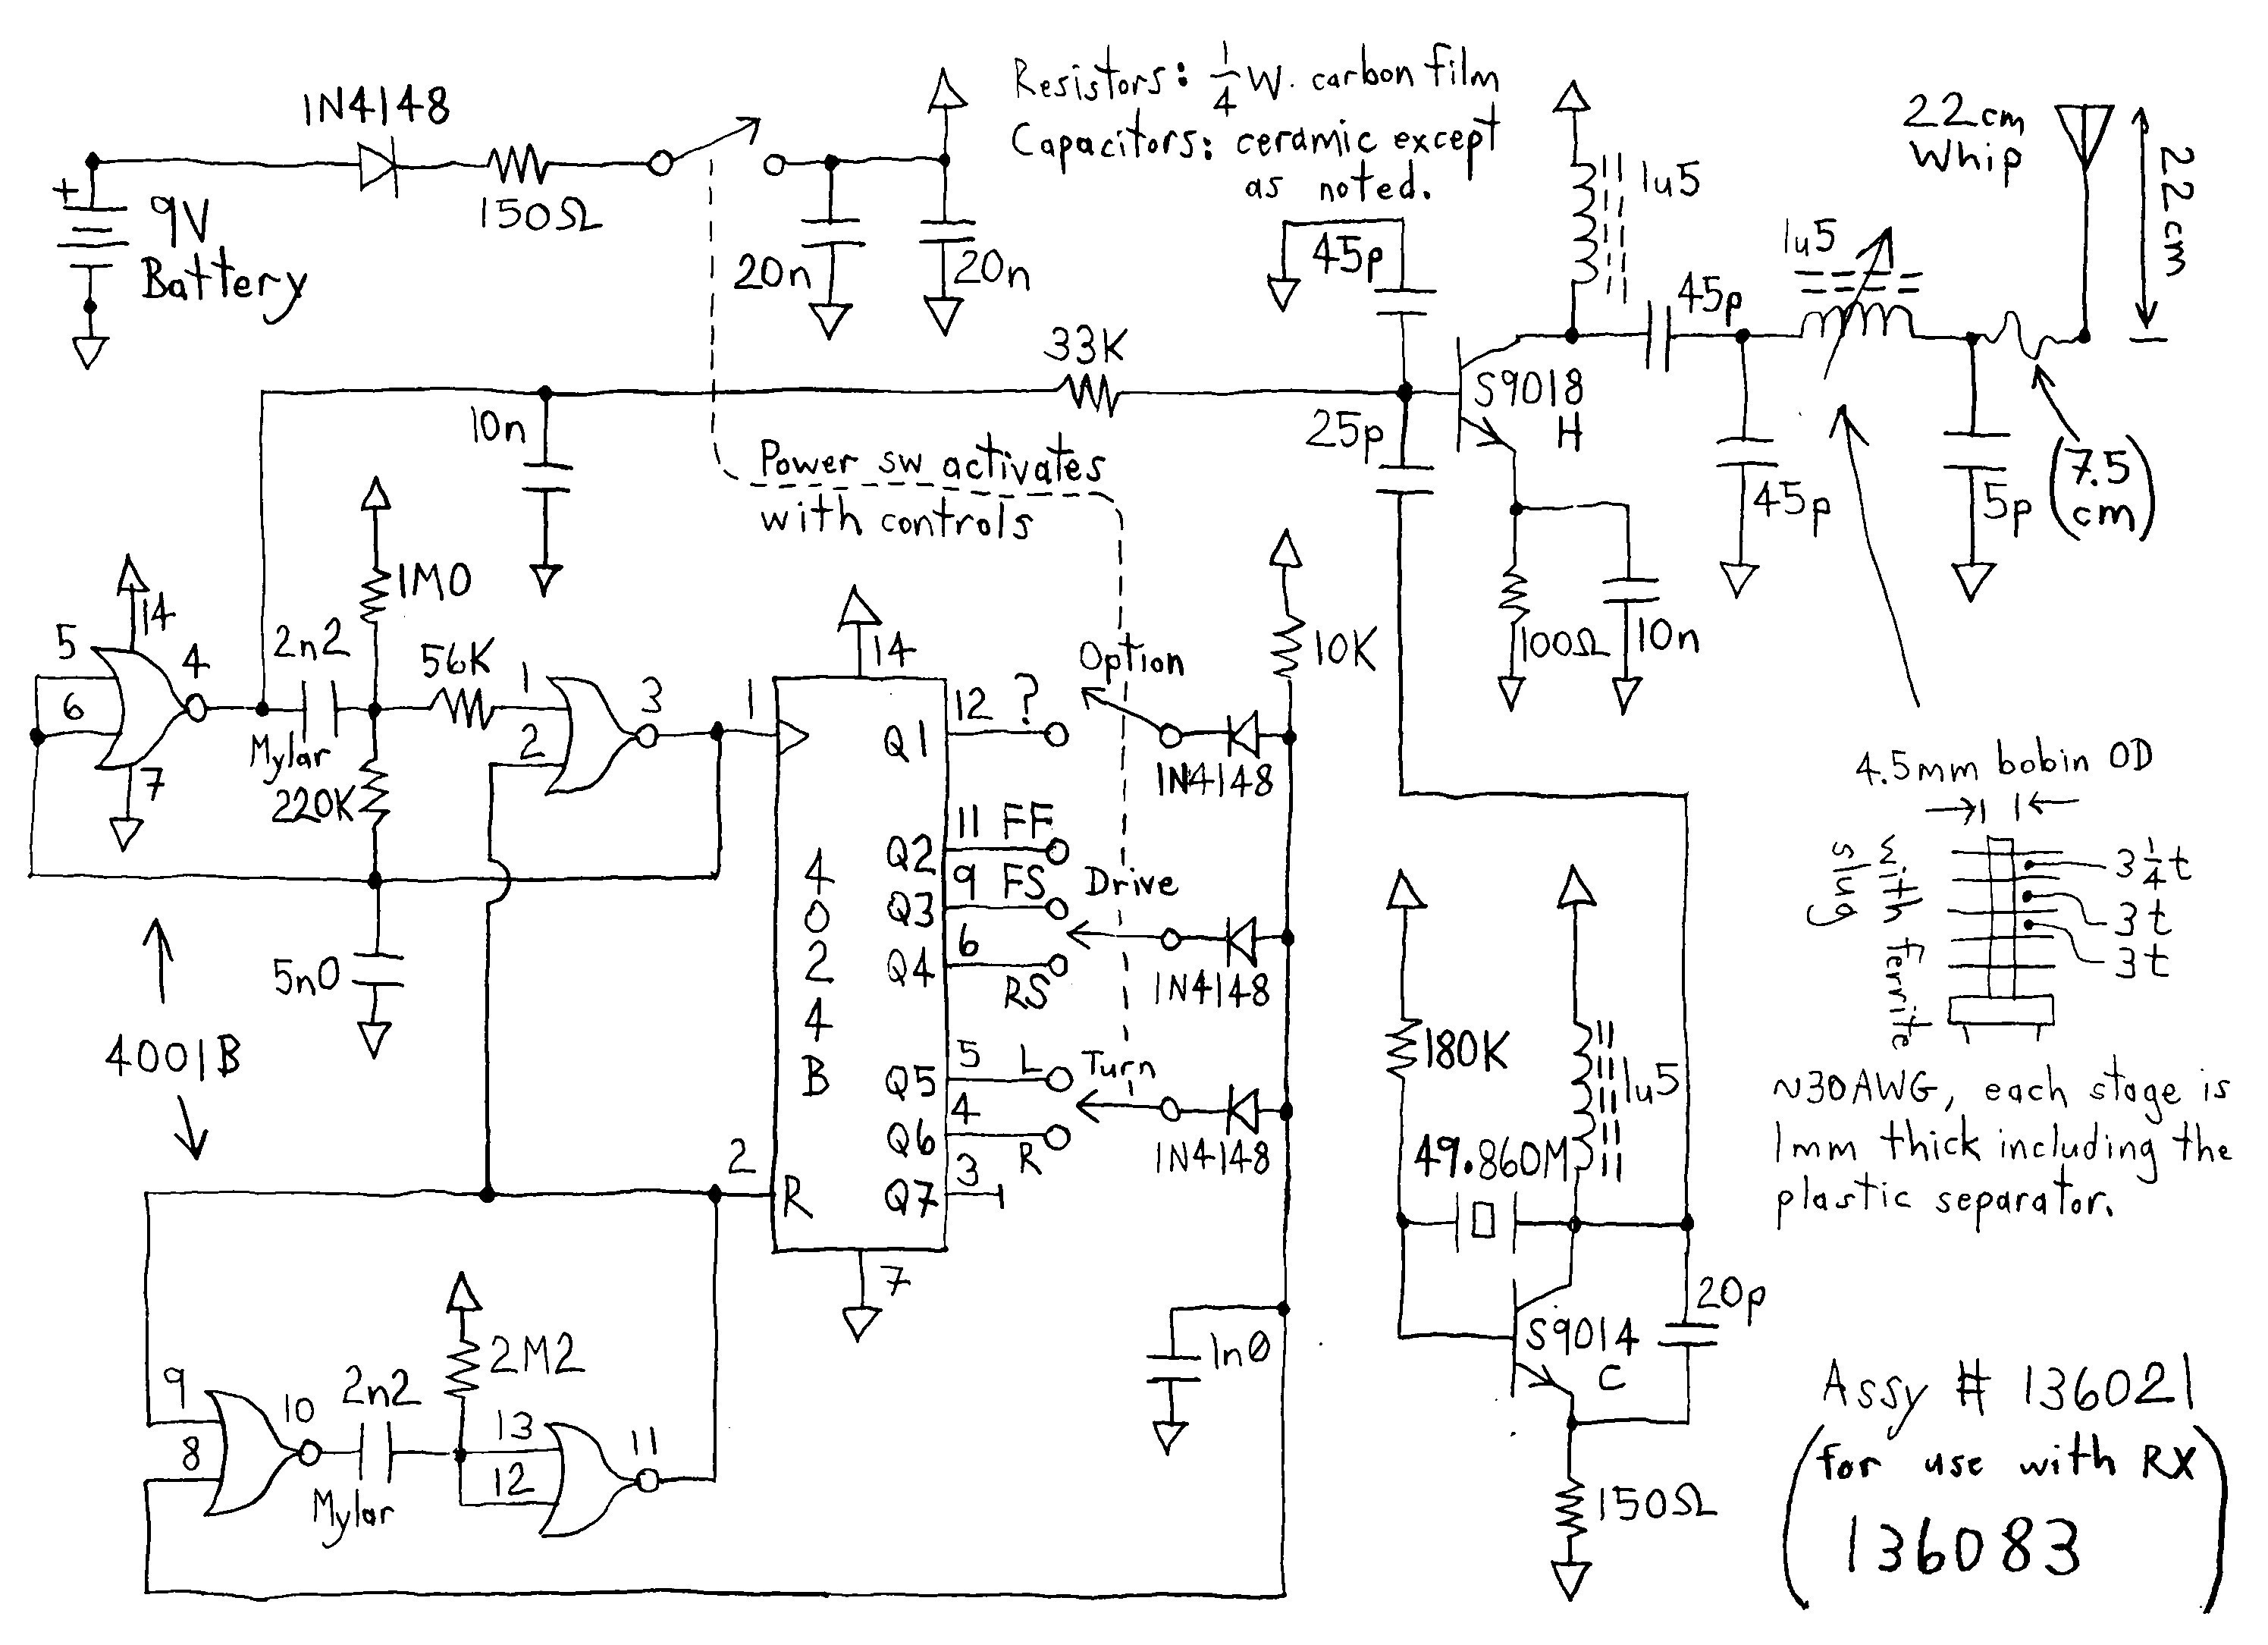 DIAGRAM] 1995 Oldsmobile Silhouette Wiring Diagram FULL Version HD Quality Wiring  Diagram - URETHANESUSPENSION.MAI-LIE.FRurethanesuspension.mai-lie.fr